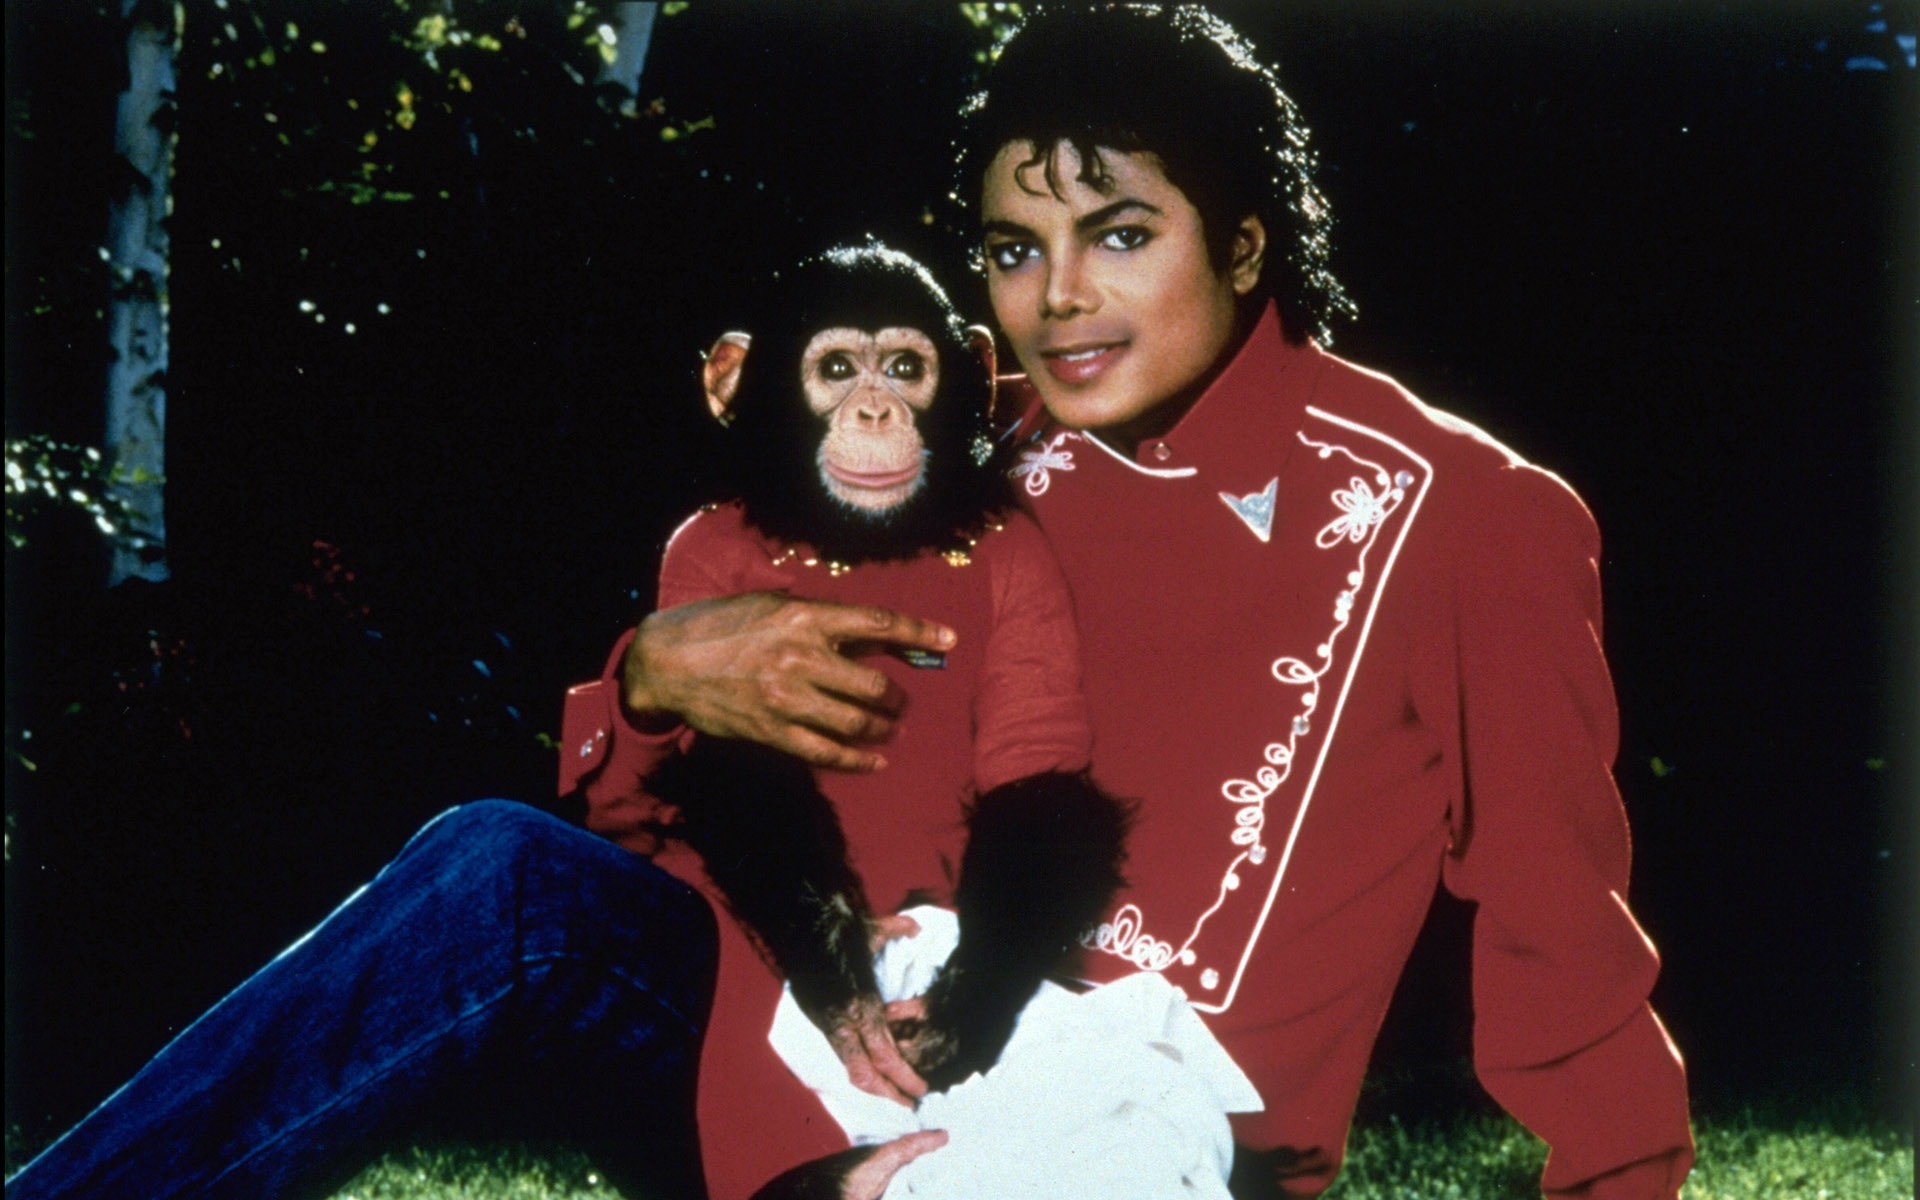 MICHAEL JACKSON WITH 'BUBBLES' HIS CHIMPANZEE